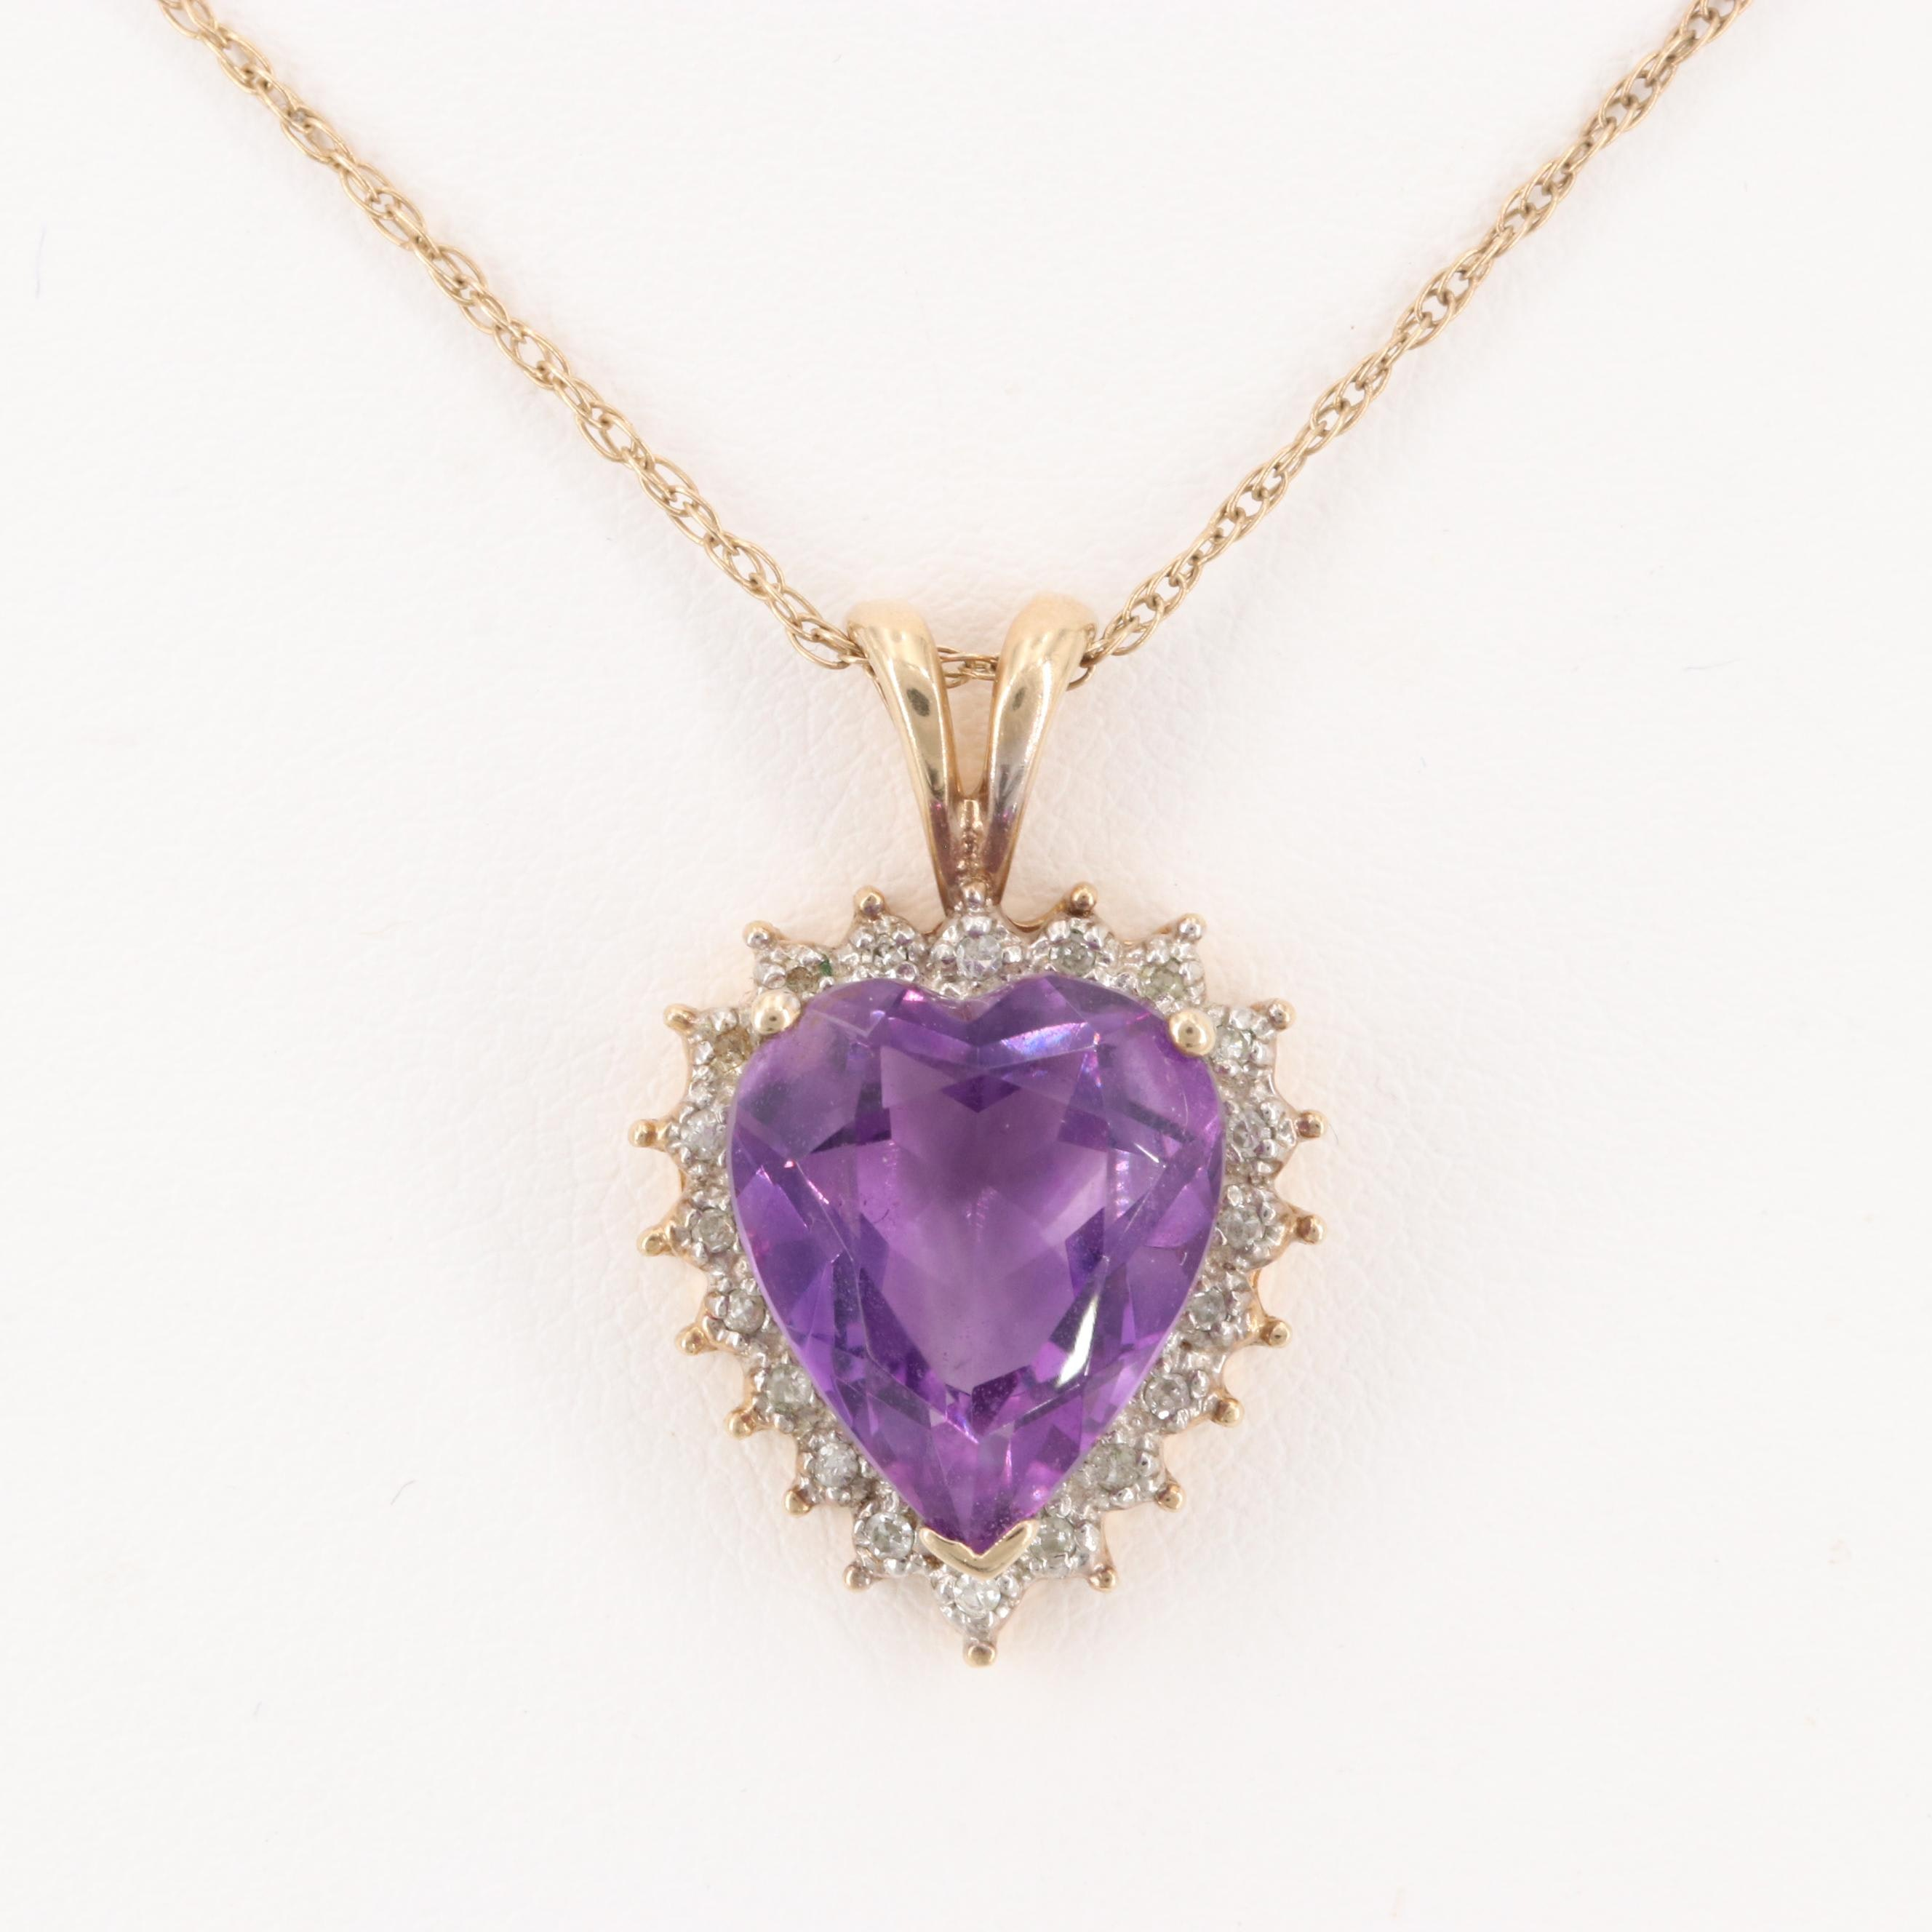 10K Yellow Gold Amethyst and Diamond Heart Pendant Necklace